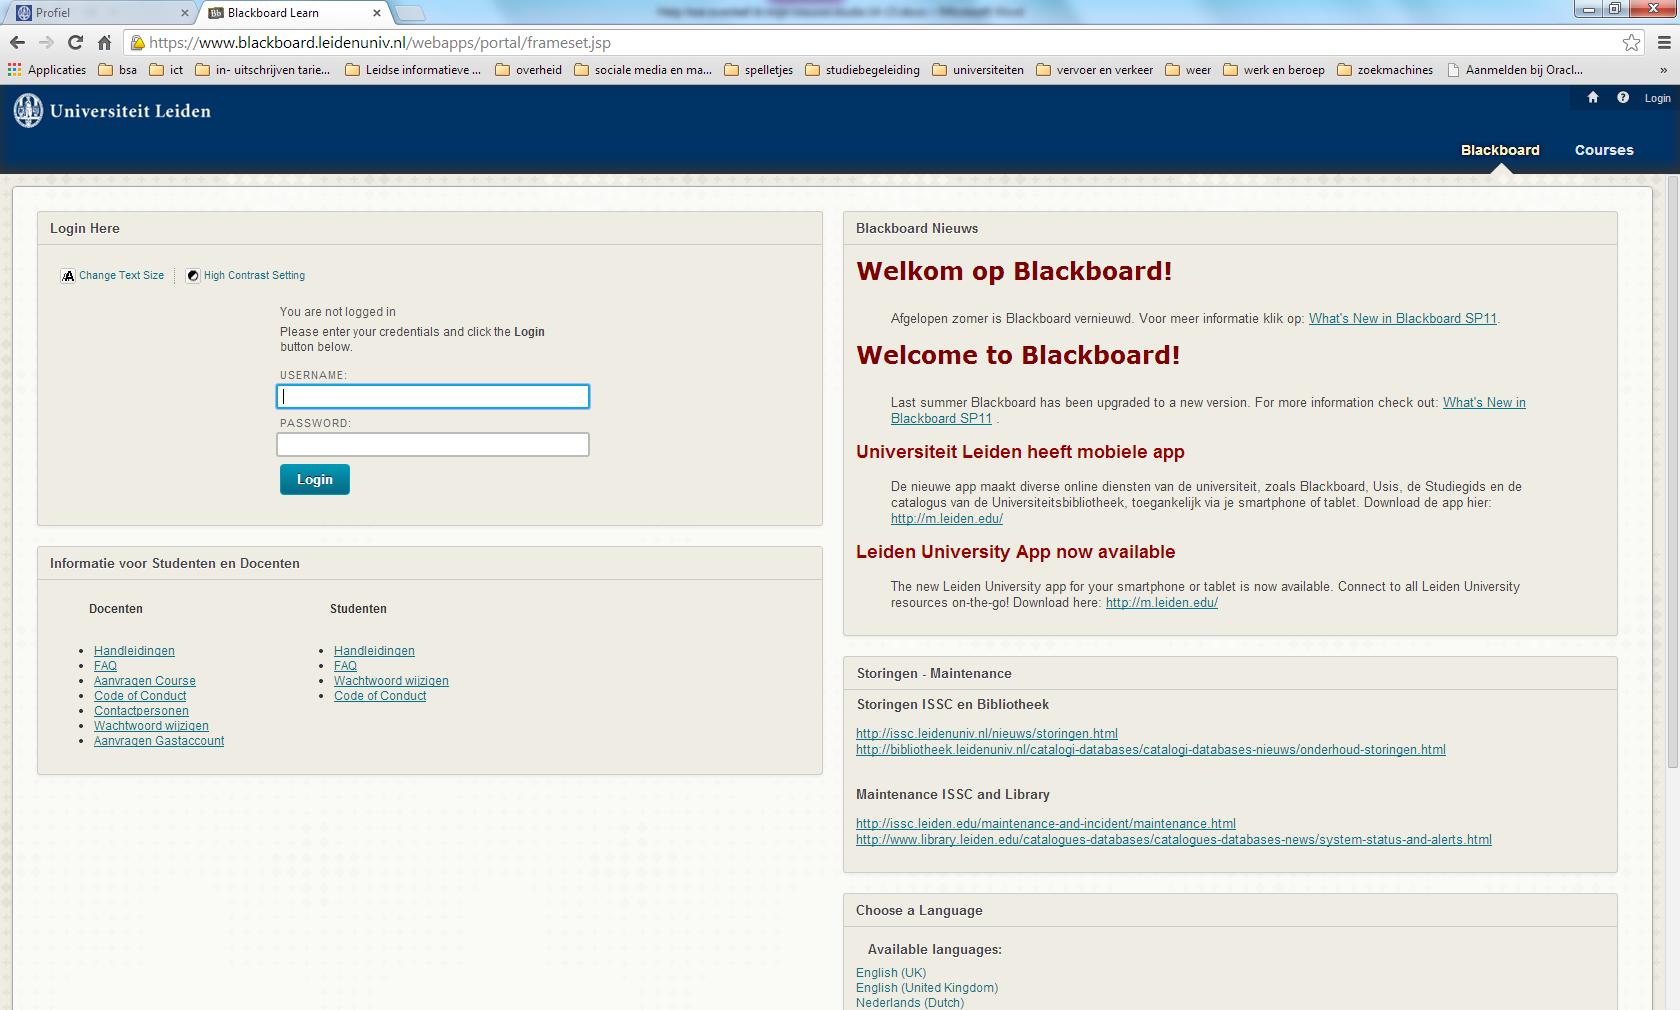 Wat is Blackboard? Blackboard is de elektronische leeromgeving van de universiteit.